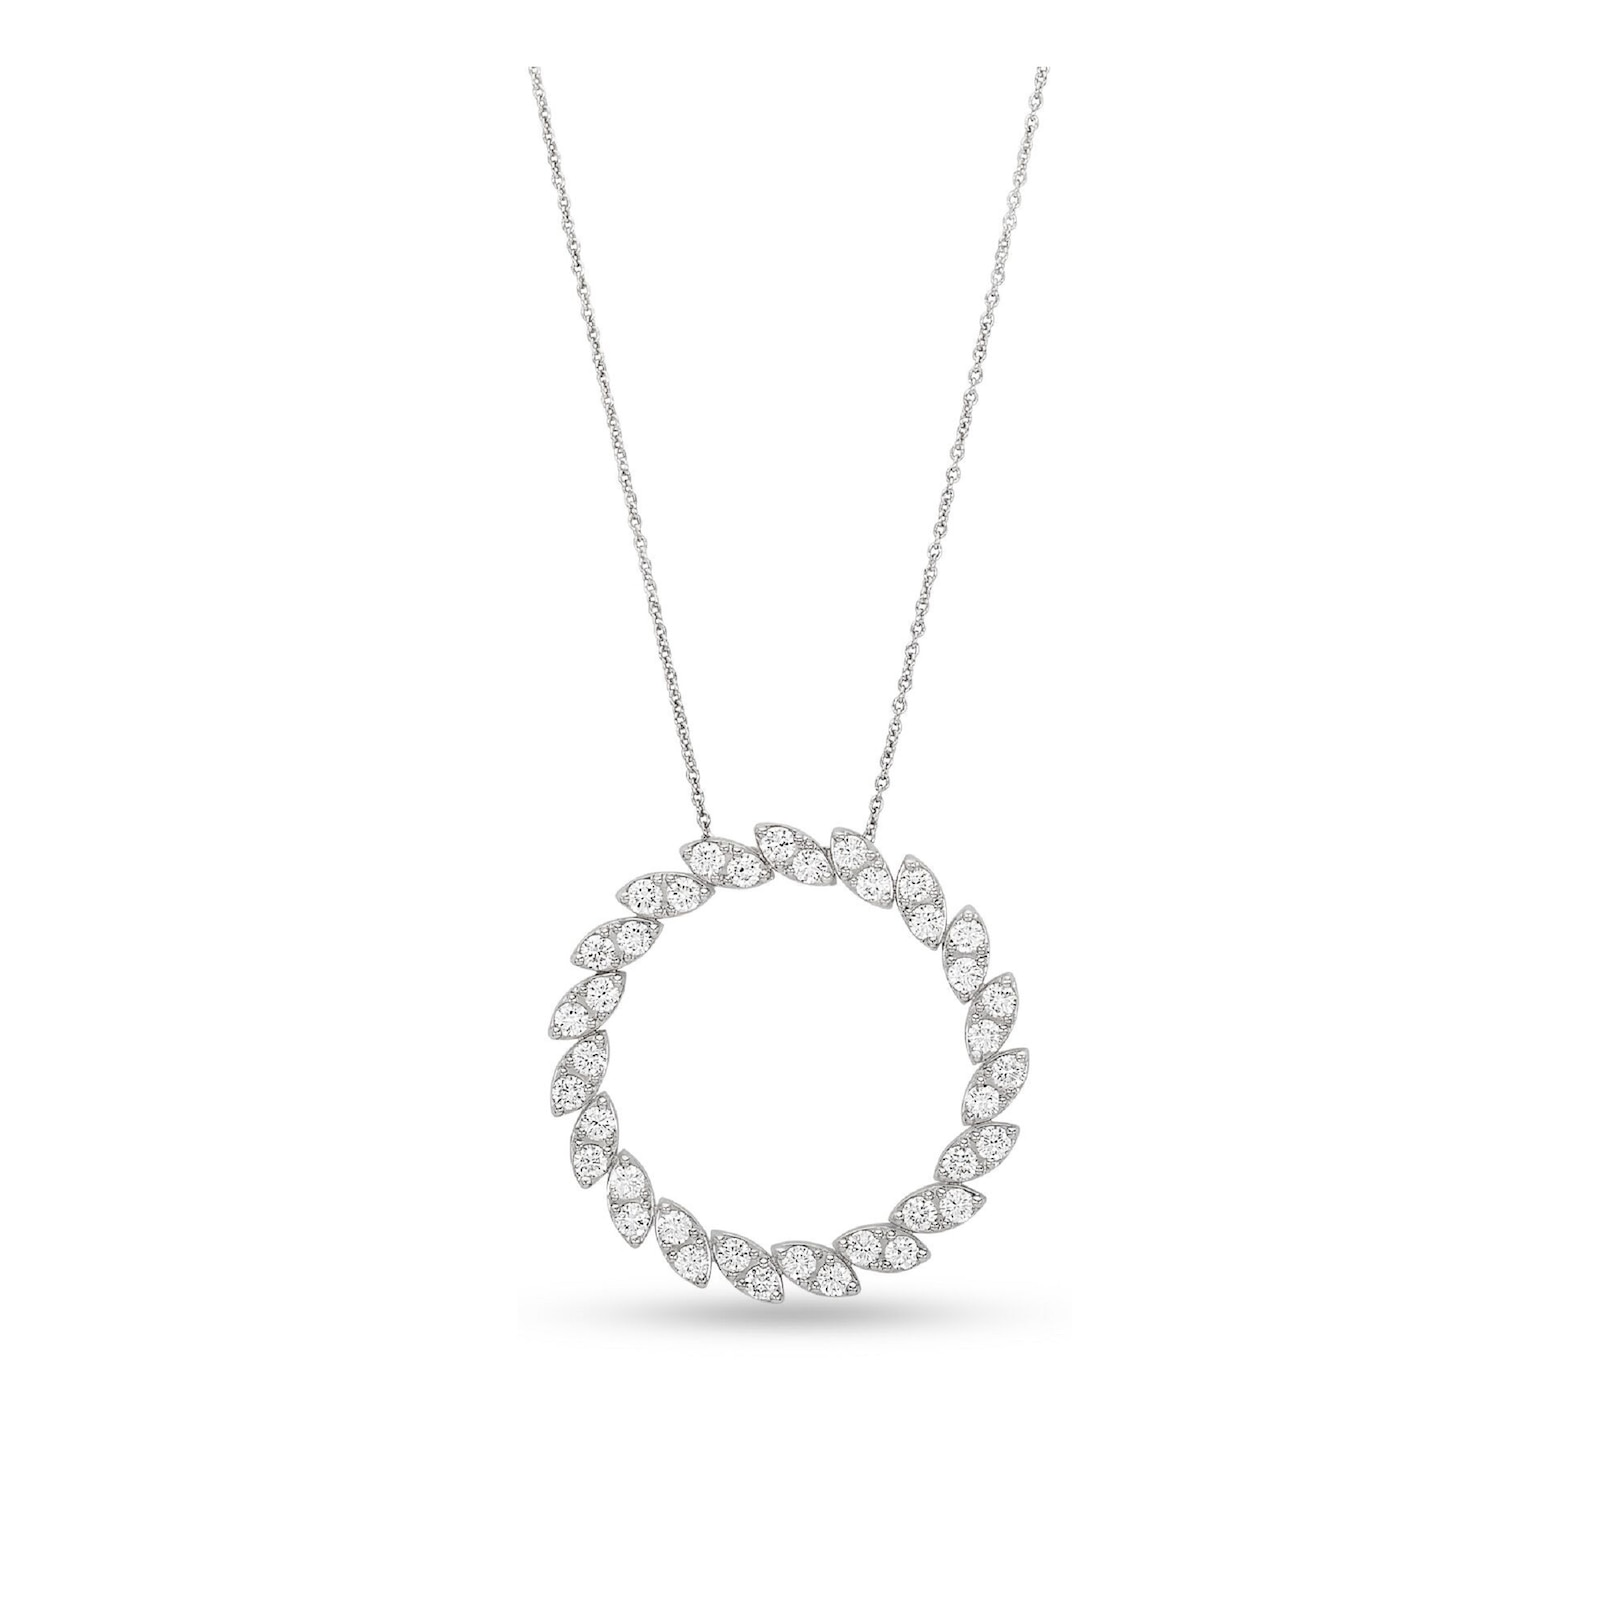 Roberto Coin The Marquesa Collection 18k White Gold 1.58cttw Diamond Swirl Necklace